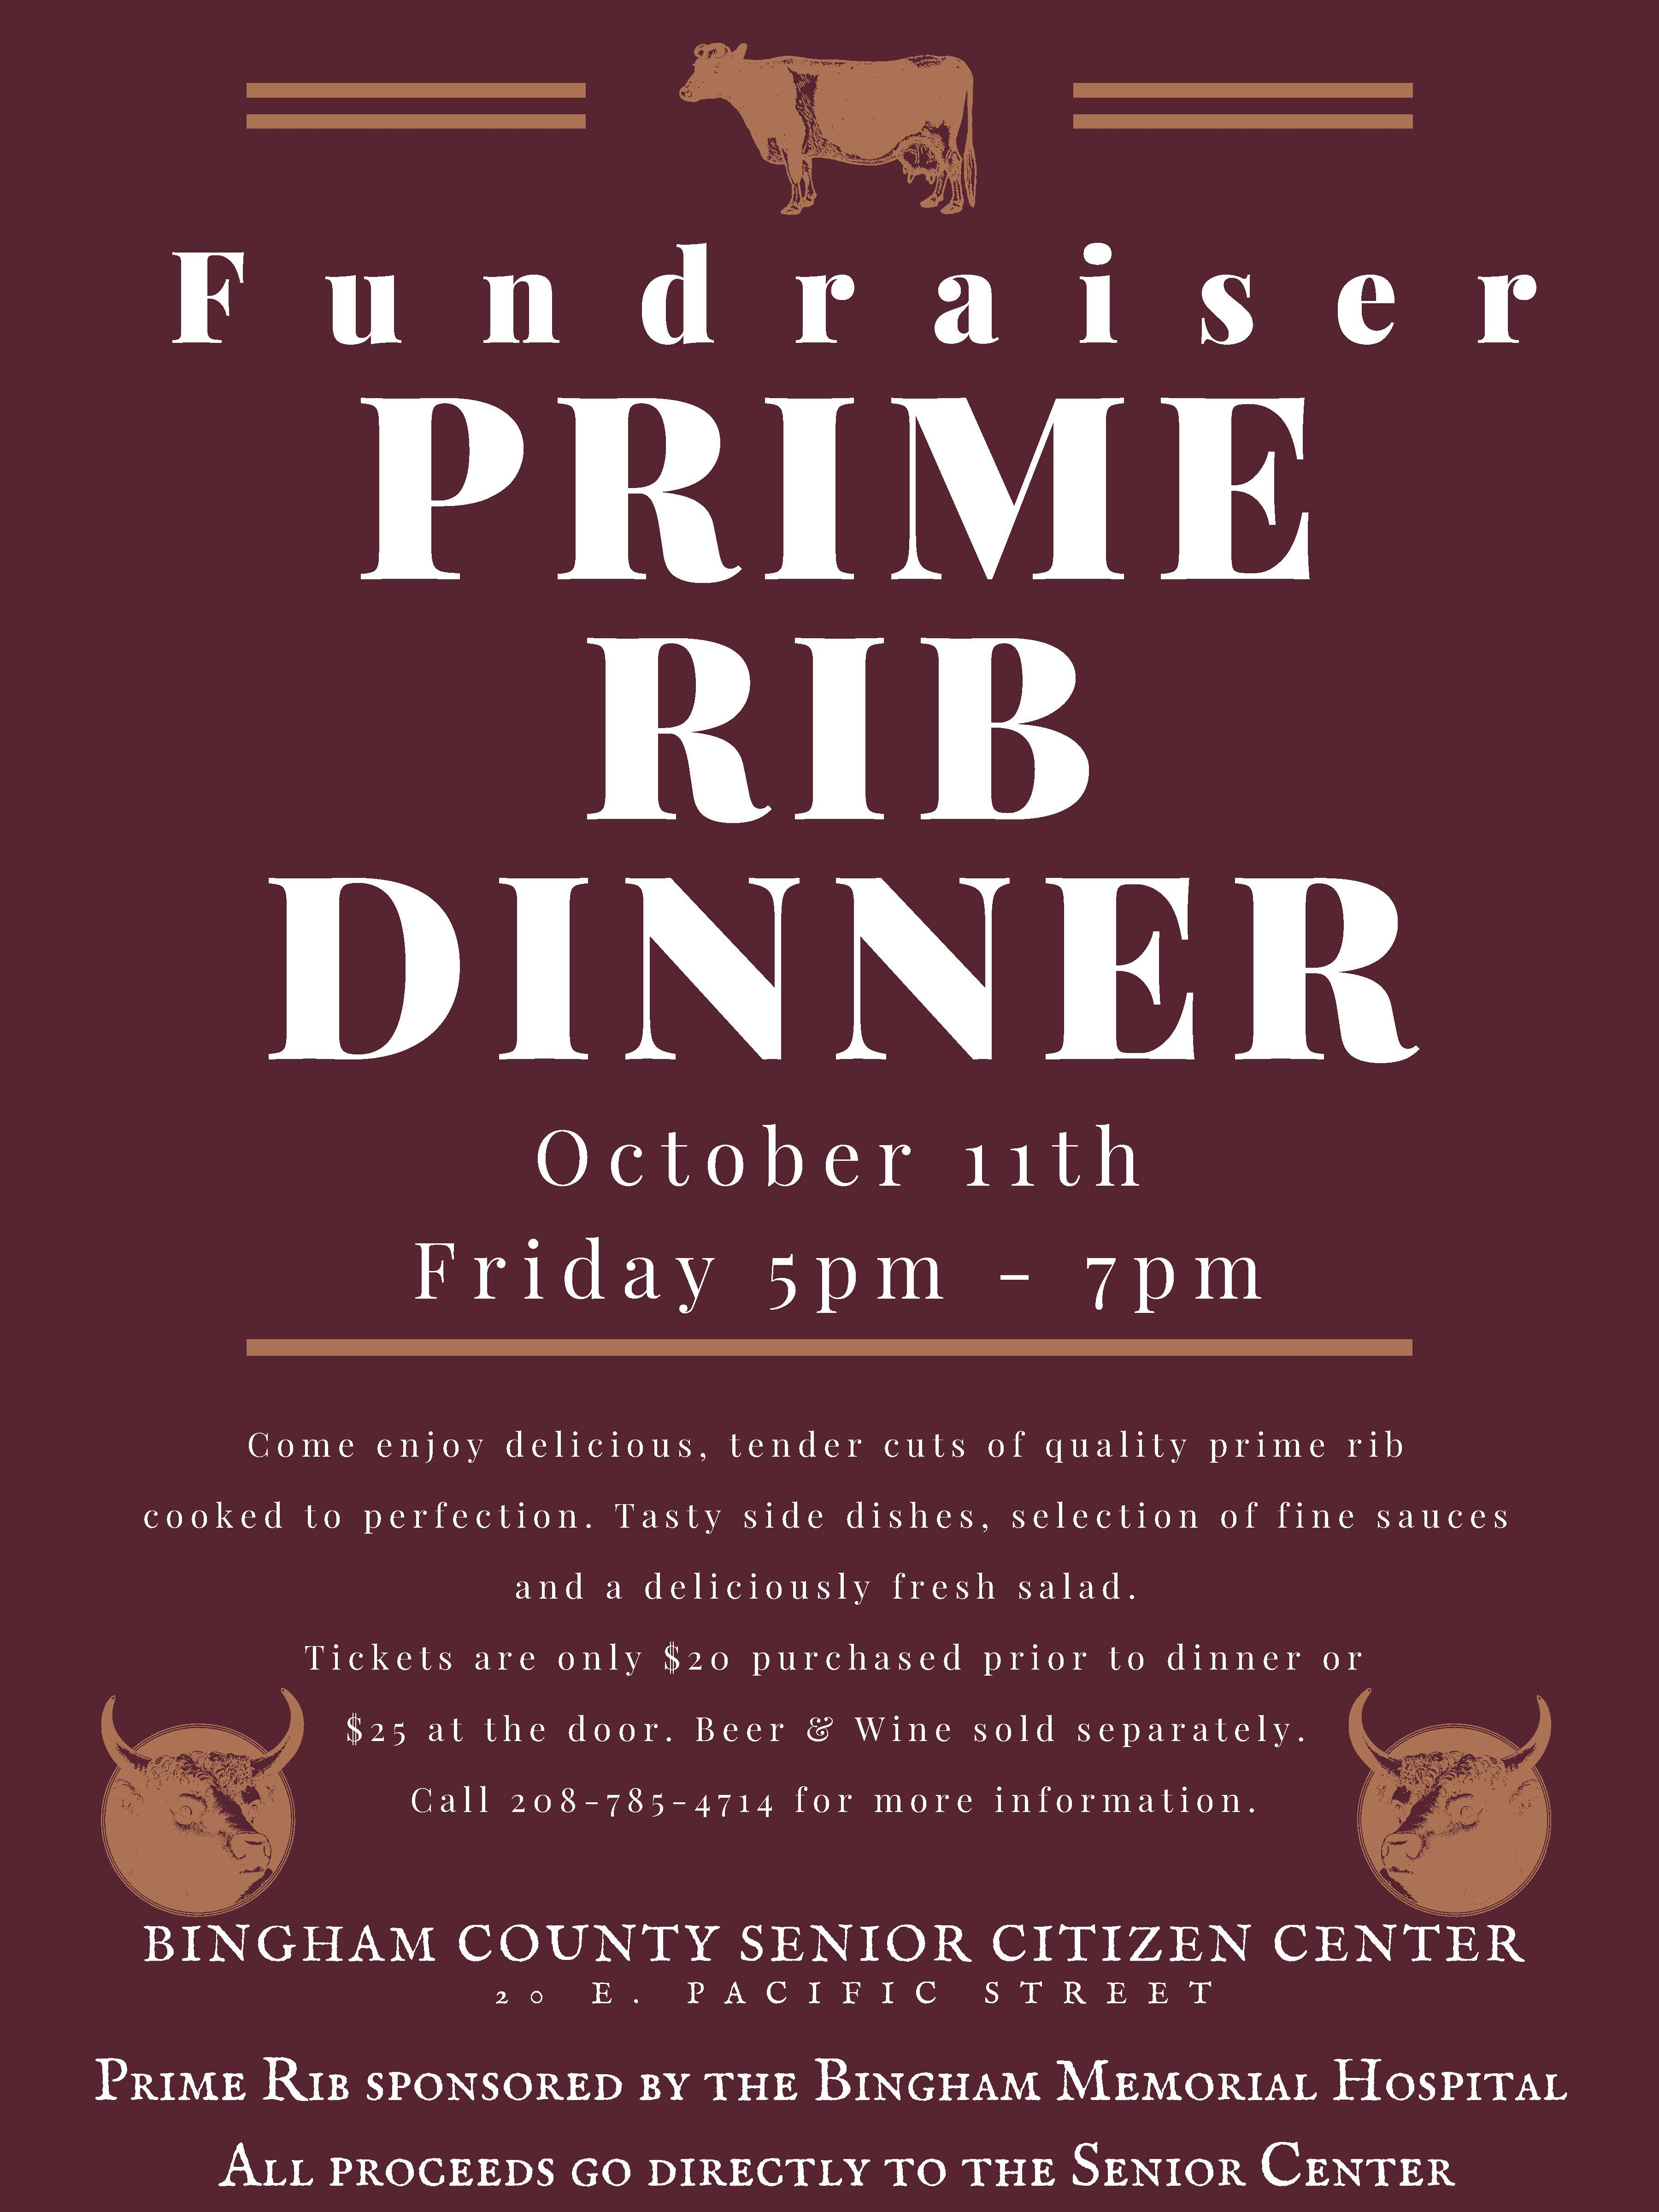 PRIME RIB DINNER 2019 FLYER WITH INFORMATION